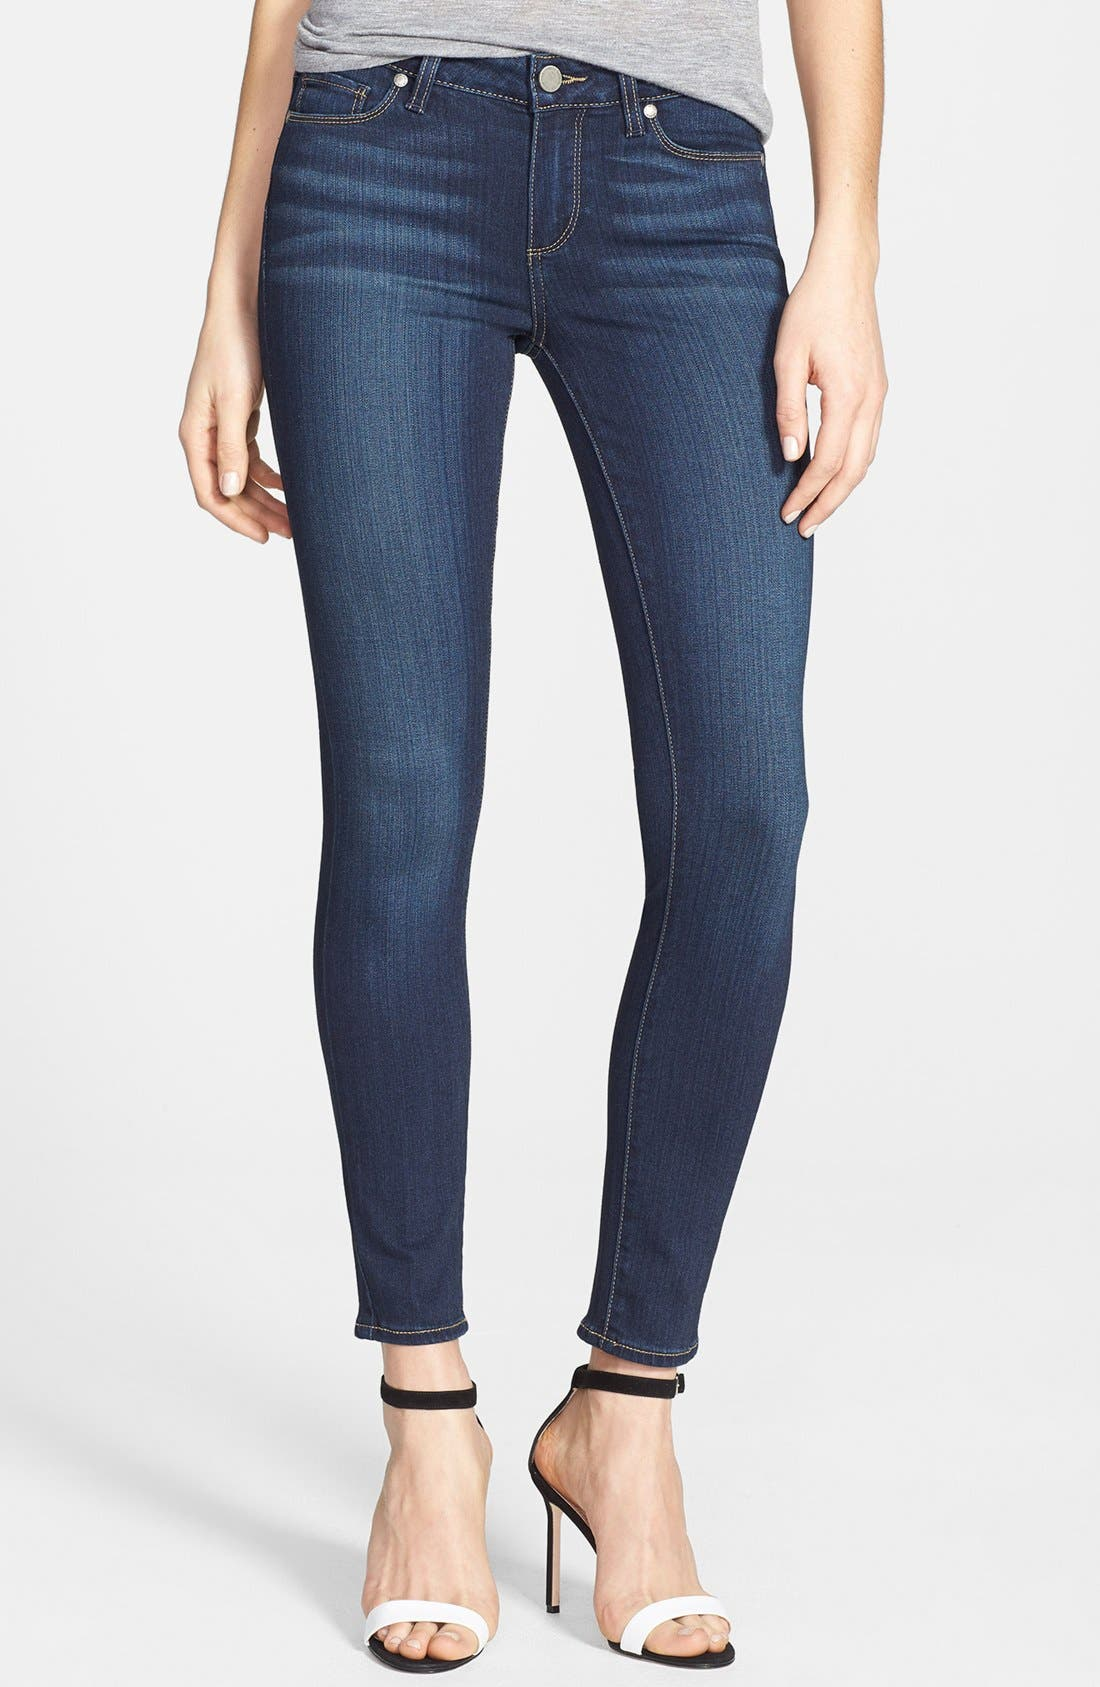 Alternate Image 1 Selected - PAIGE Transcend - Verdugo Ankle Skinny Jeans (Nottingham)